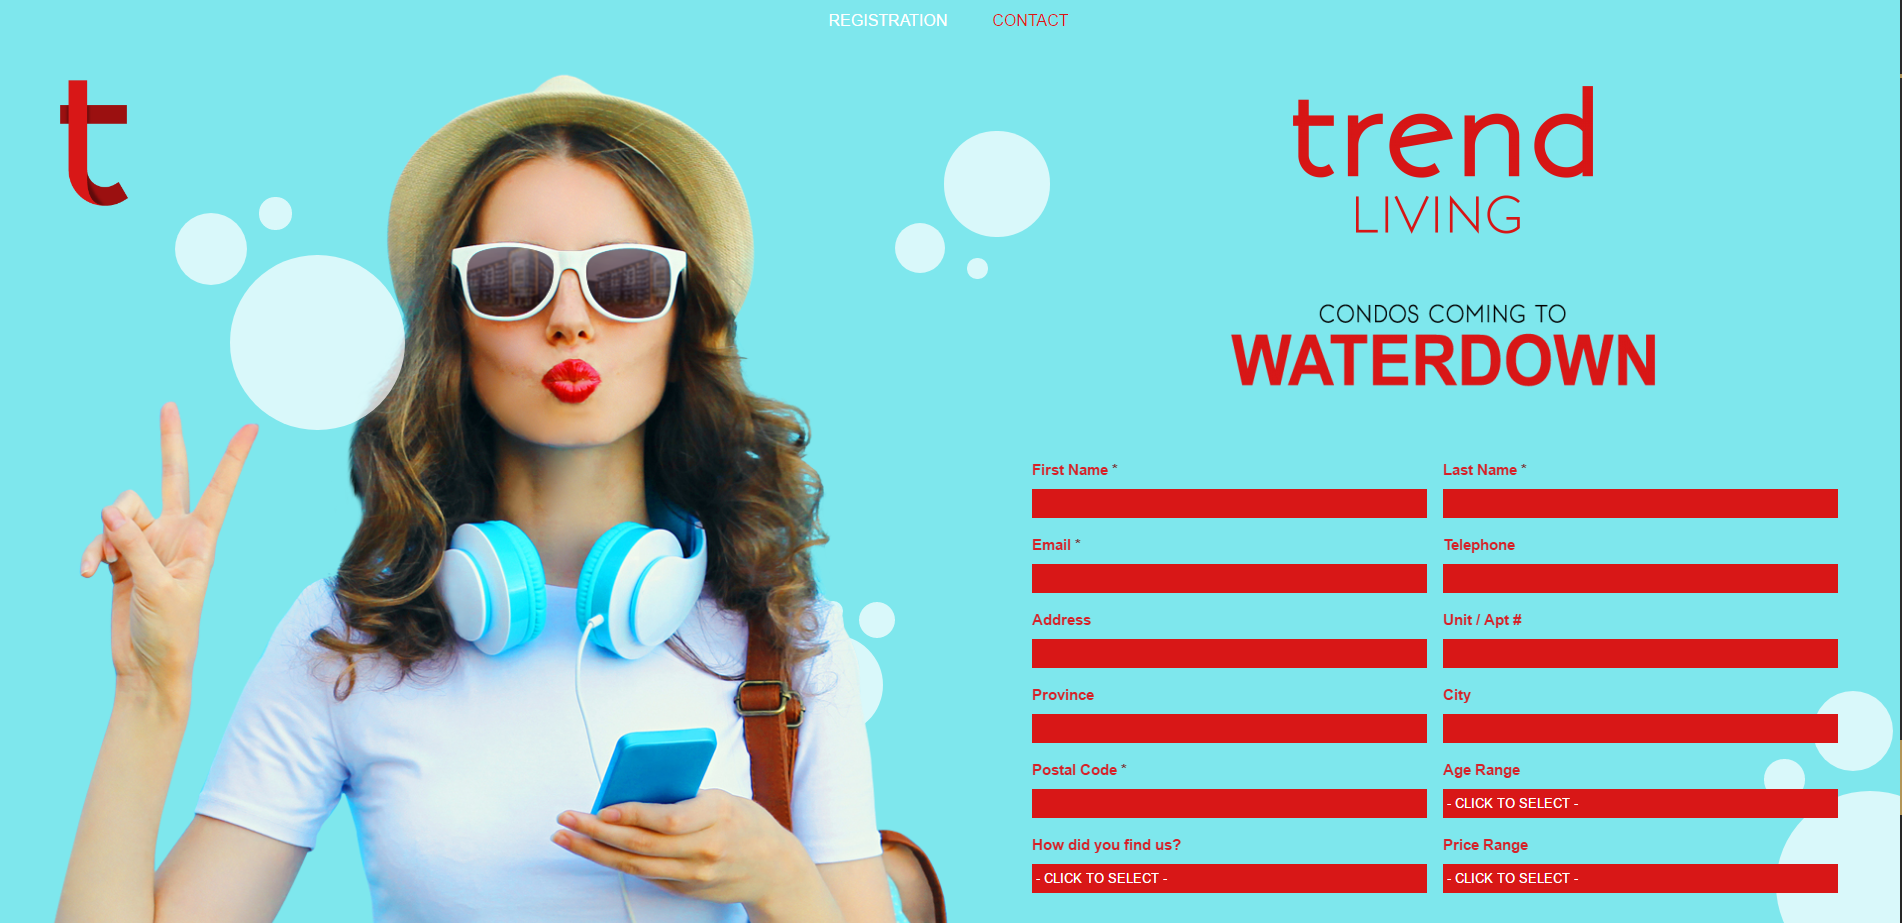 Trend Living Registration Page by Kre8it Design Studio.